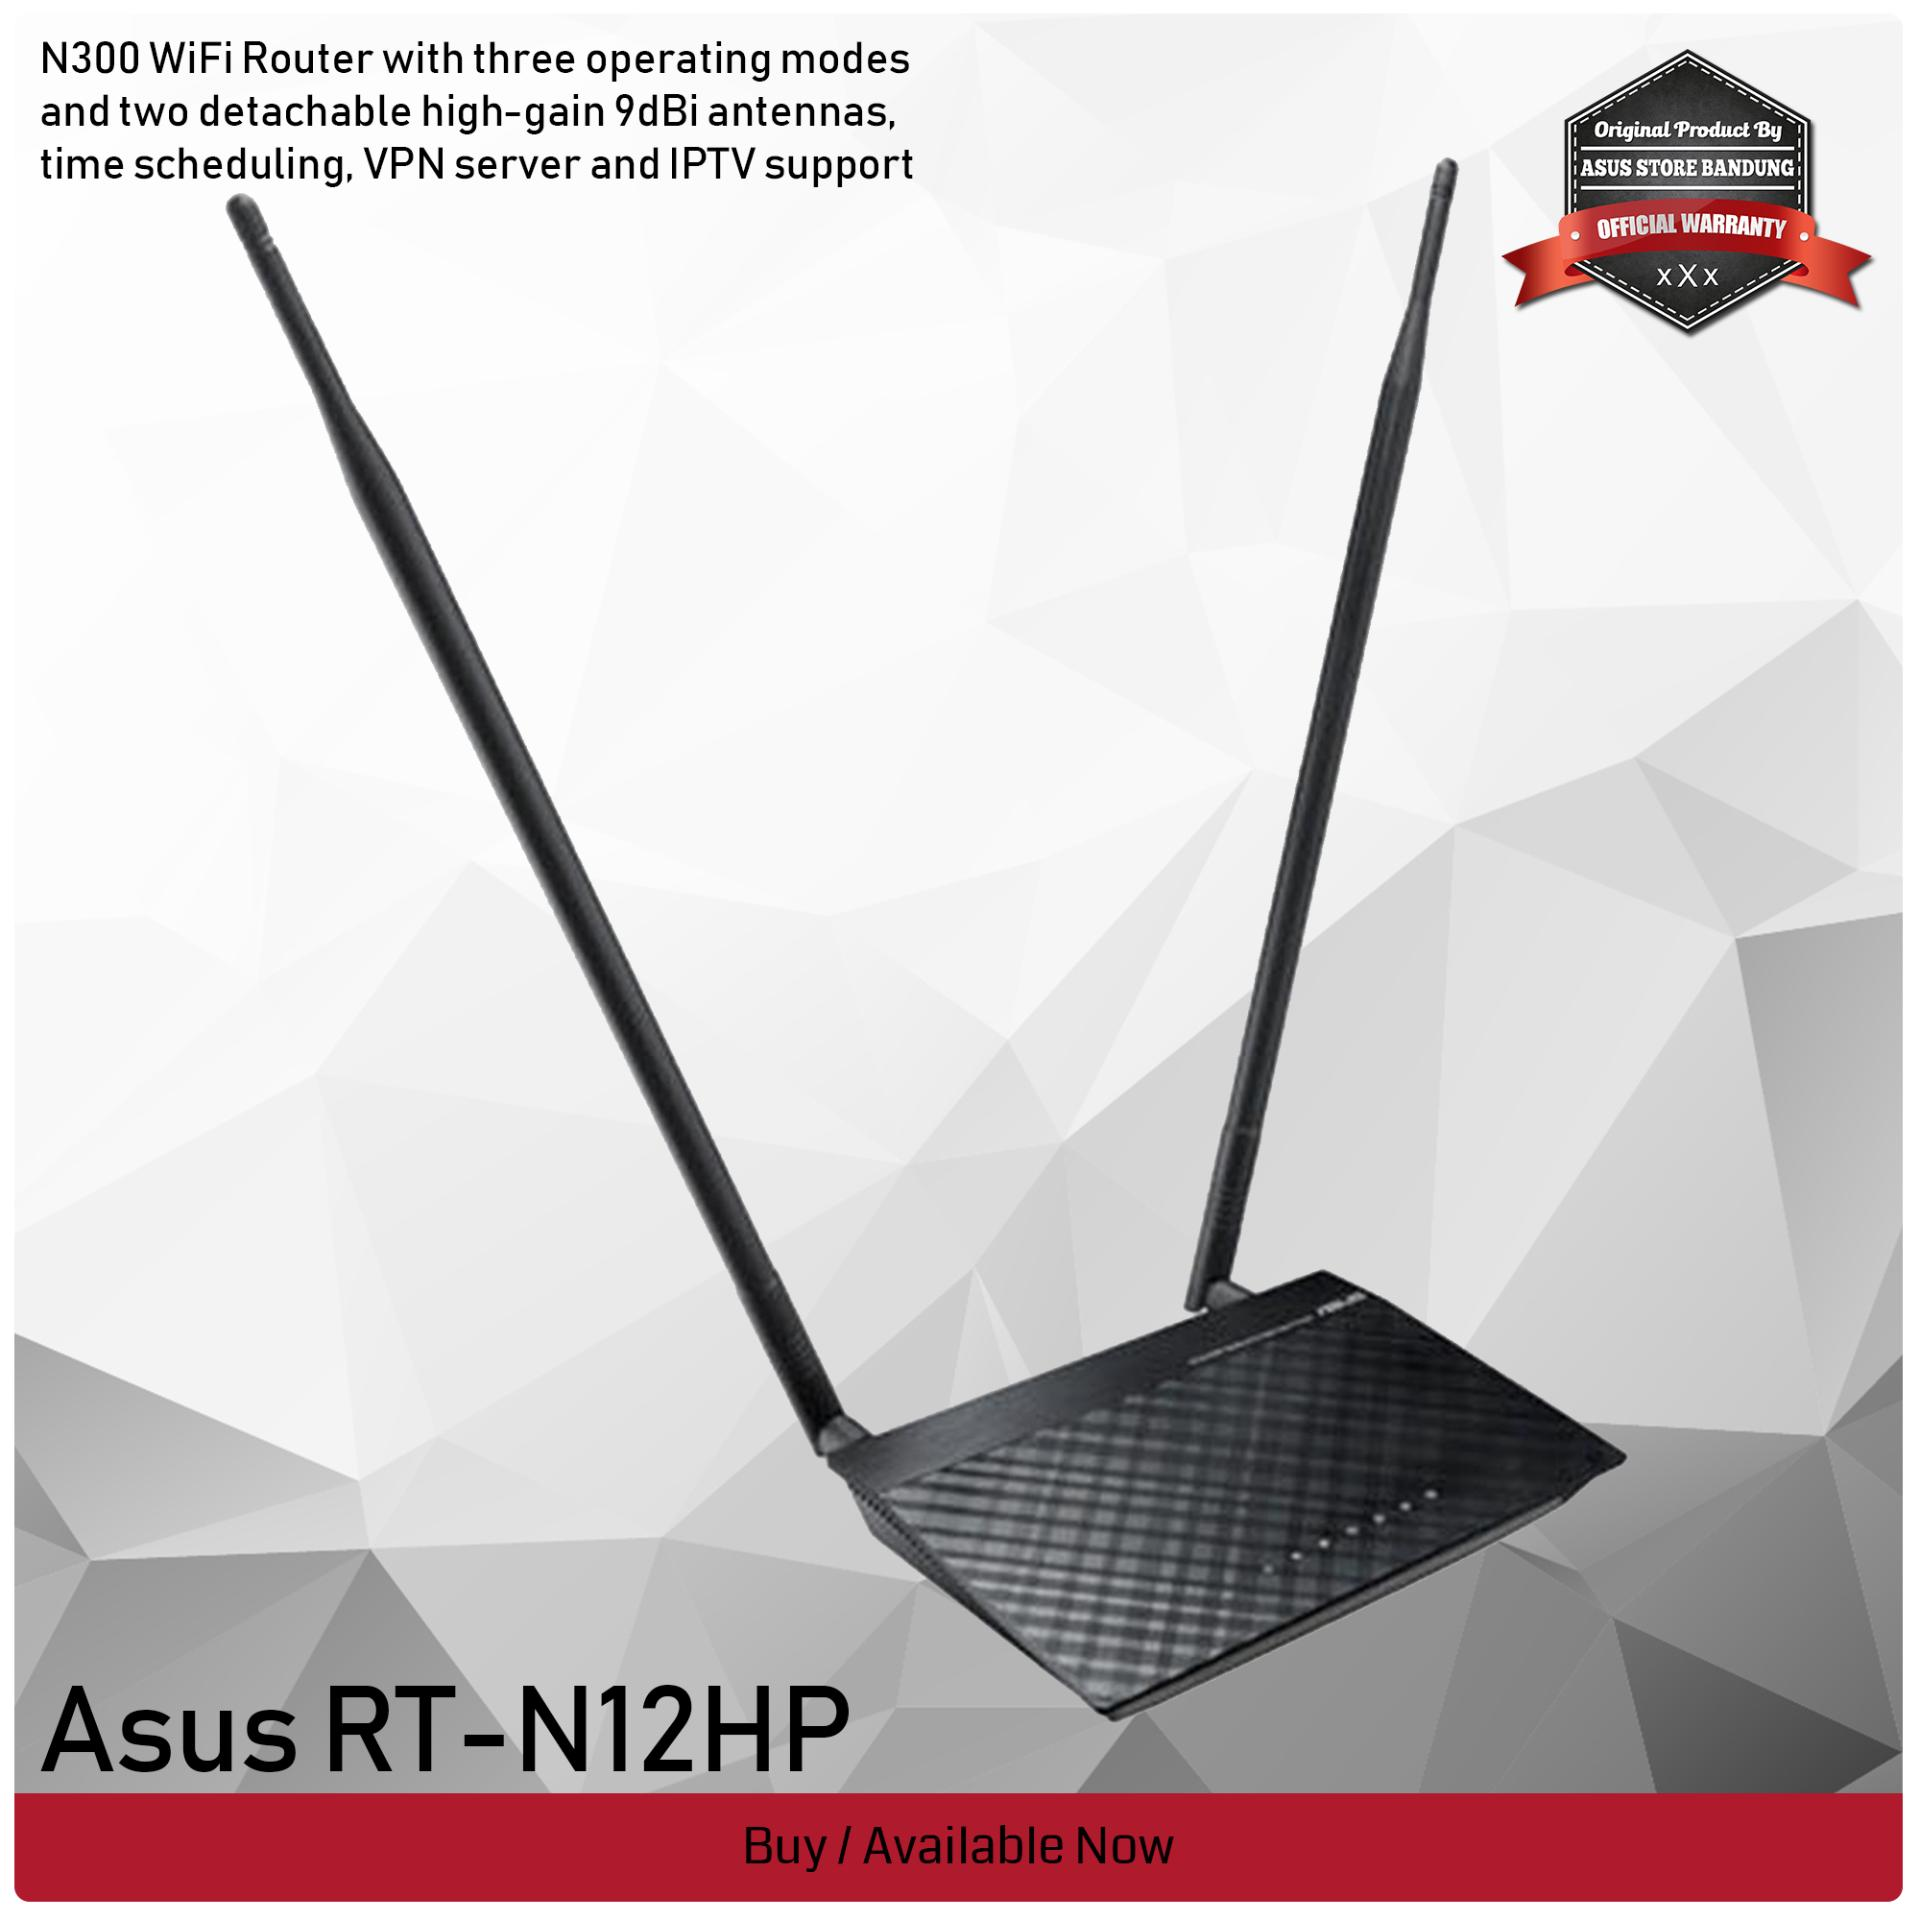 Routers Asus Wireless N Router Rt N12 Plus N12hp N300 Wifi Range Extender Access Point 3 Years Official Warranty